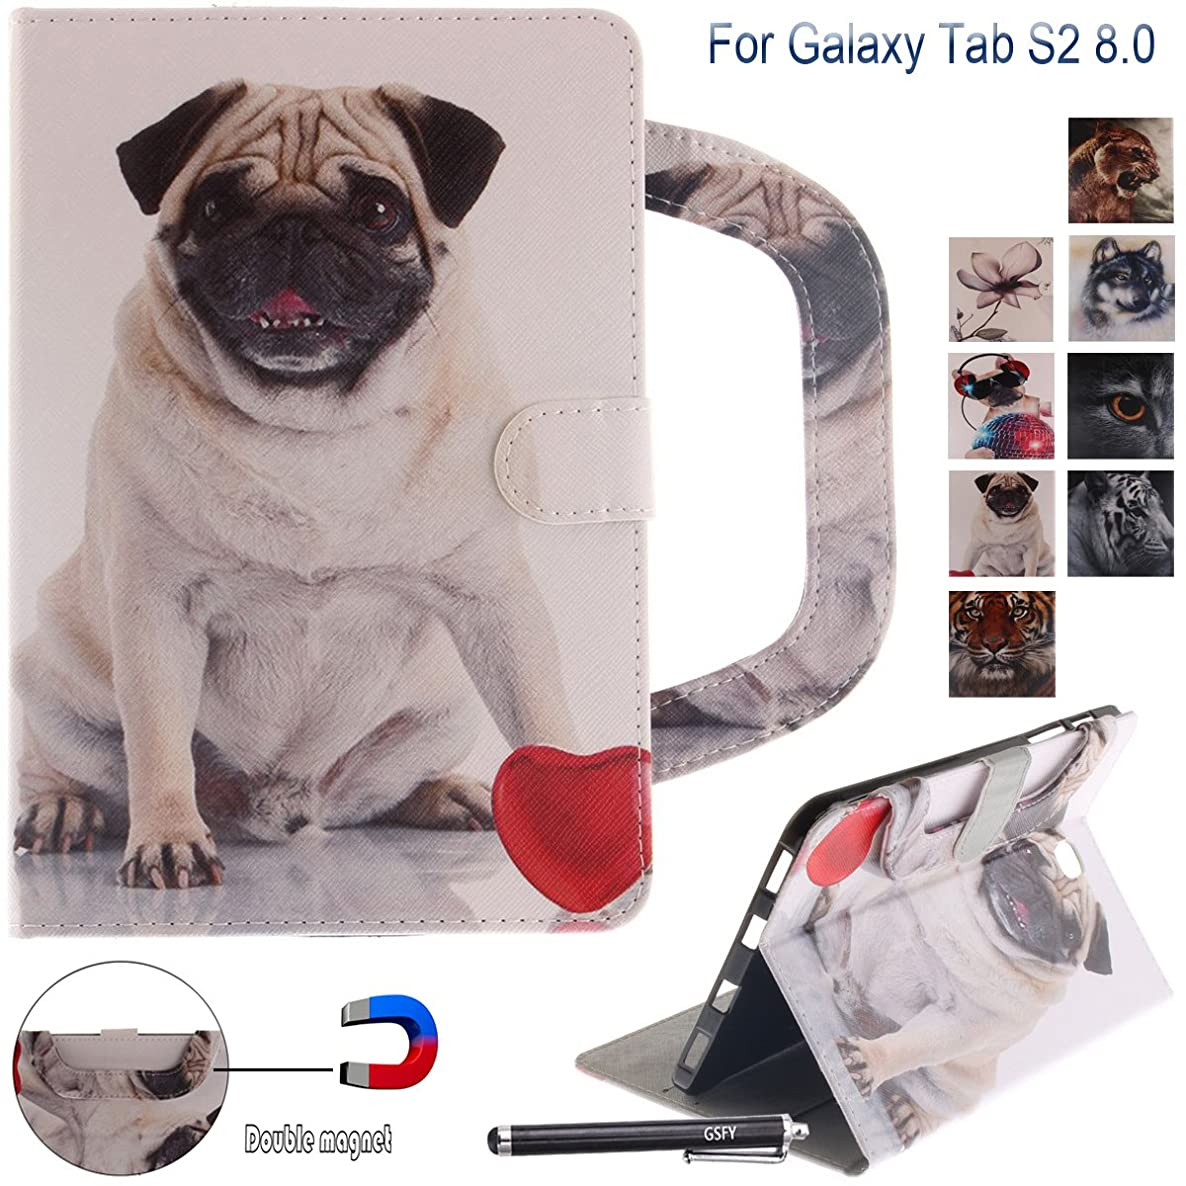 Galaxy Tab S2 8.0 Case, Newshine Portable Type PU Leather Magnetic Folio Wallet Cover with Card Holder for 2015 Samsung Galaxy Tab S2 Tablet (8.0 inch, SM-T710 T715), Pug pavs4521005384